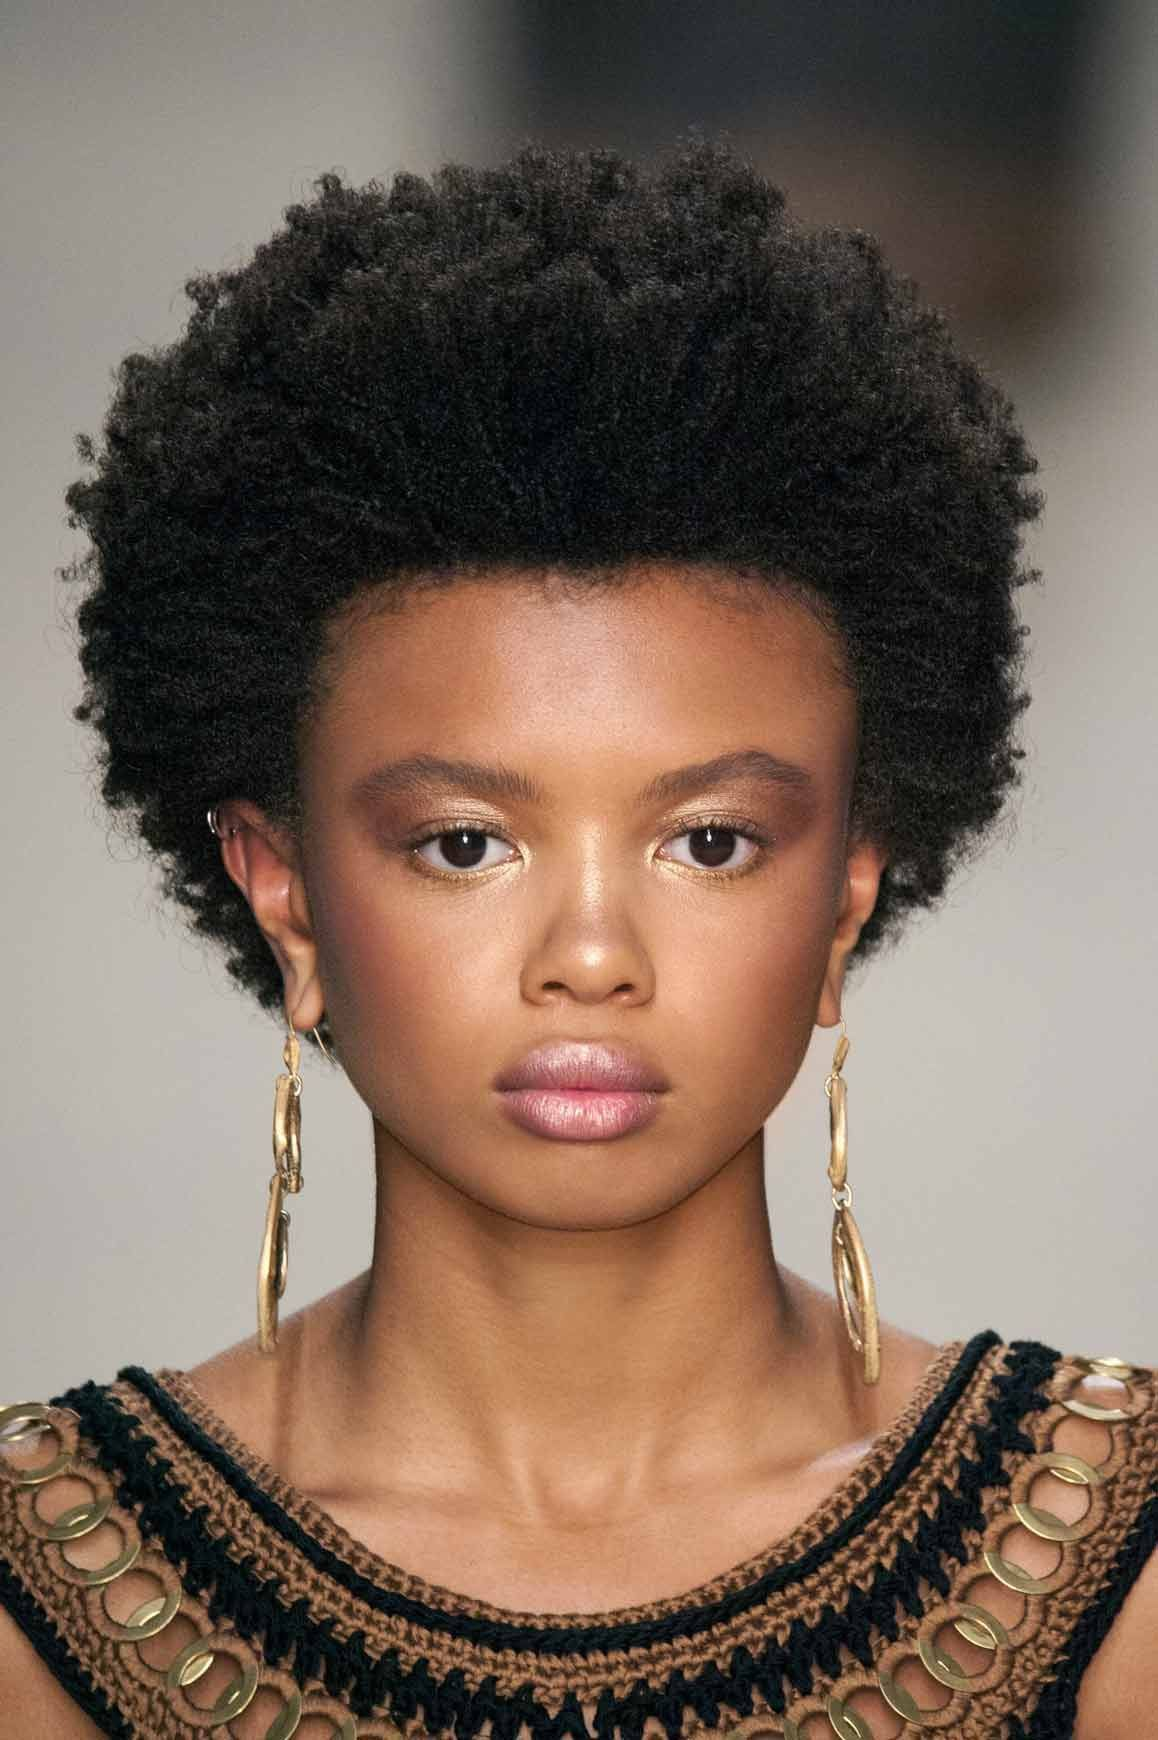 Une Coupe Afro Boule Coupe Afro Afro Idees De Coiffures